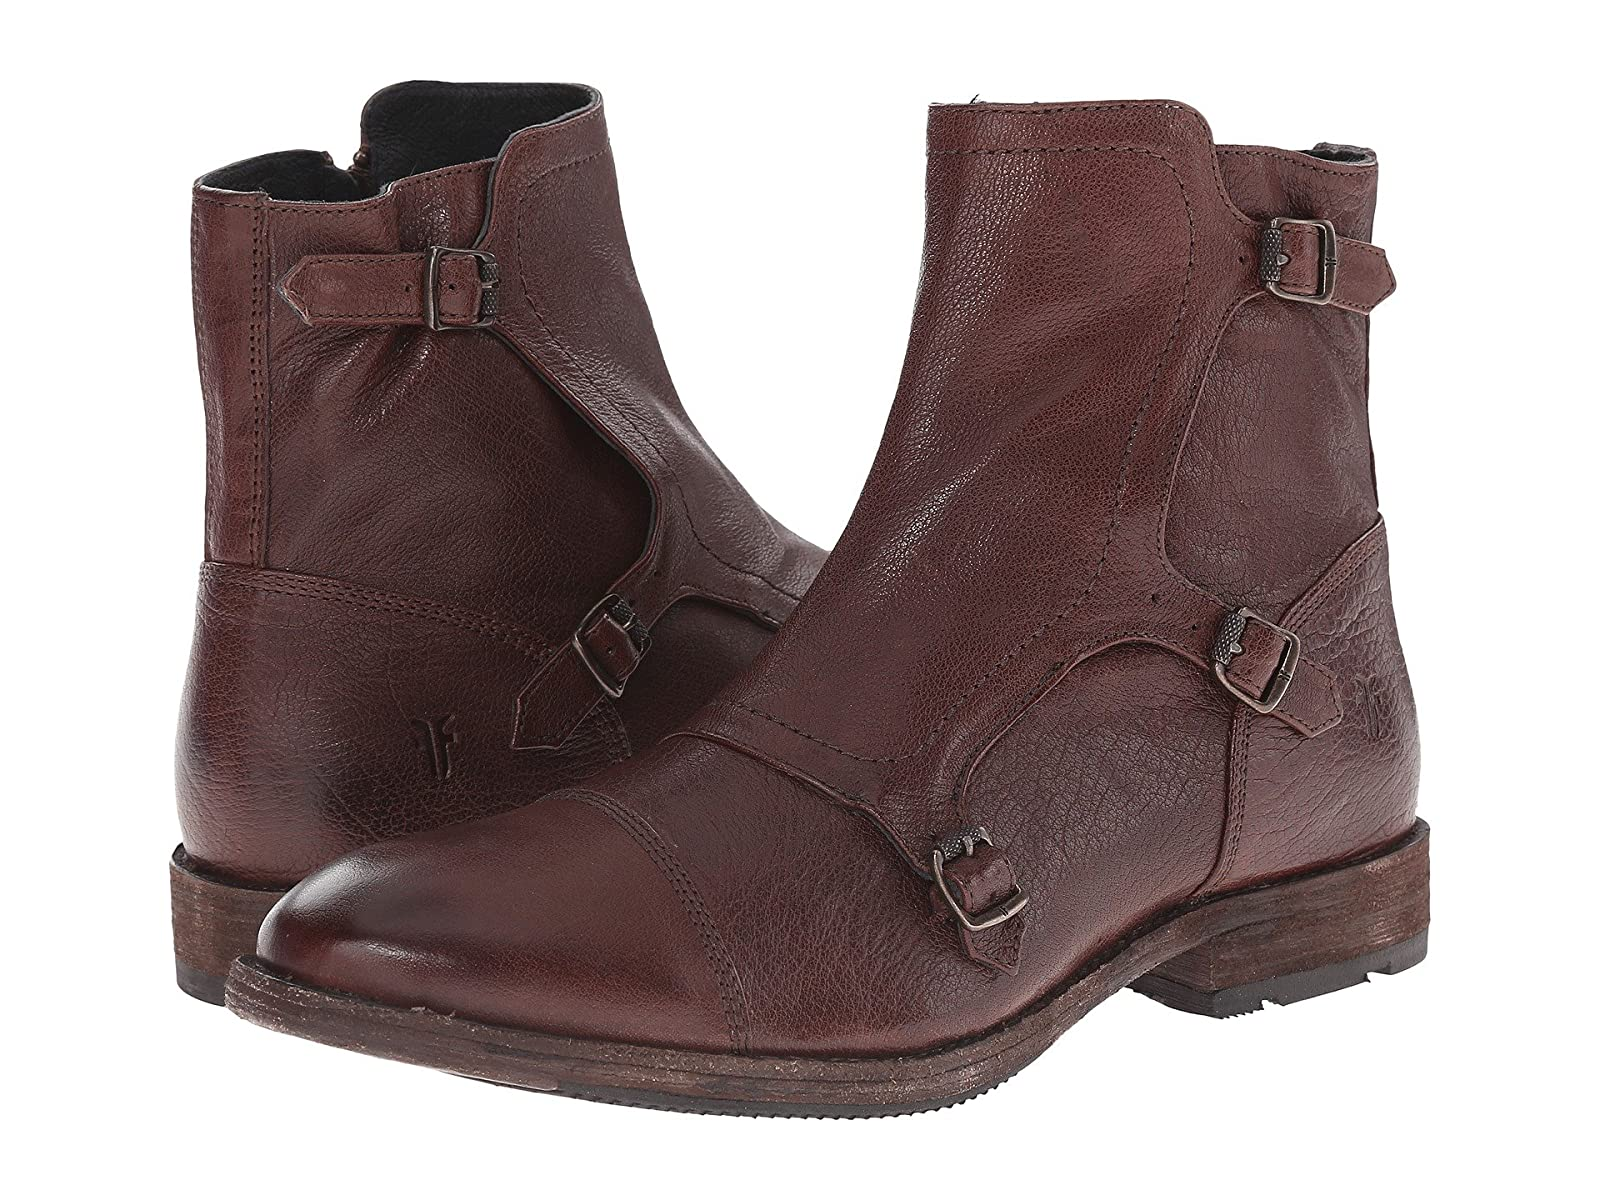 Frye Ethan Triple MonkCheap and distinctive eye-catching shoes